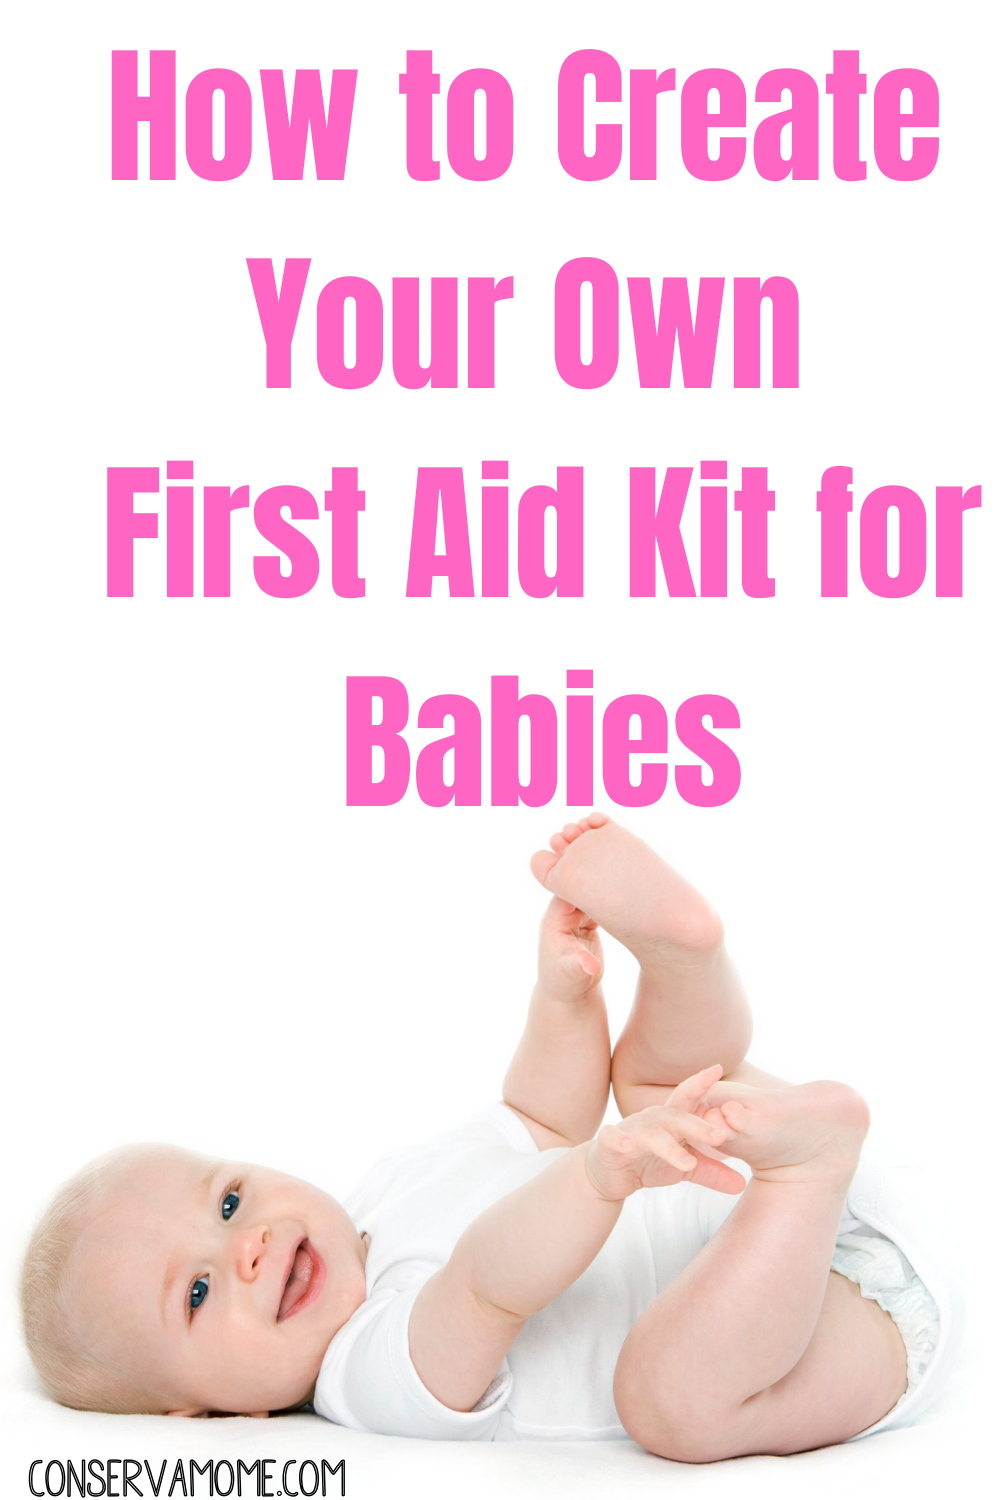 How to create your own first aid kit for babies.